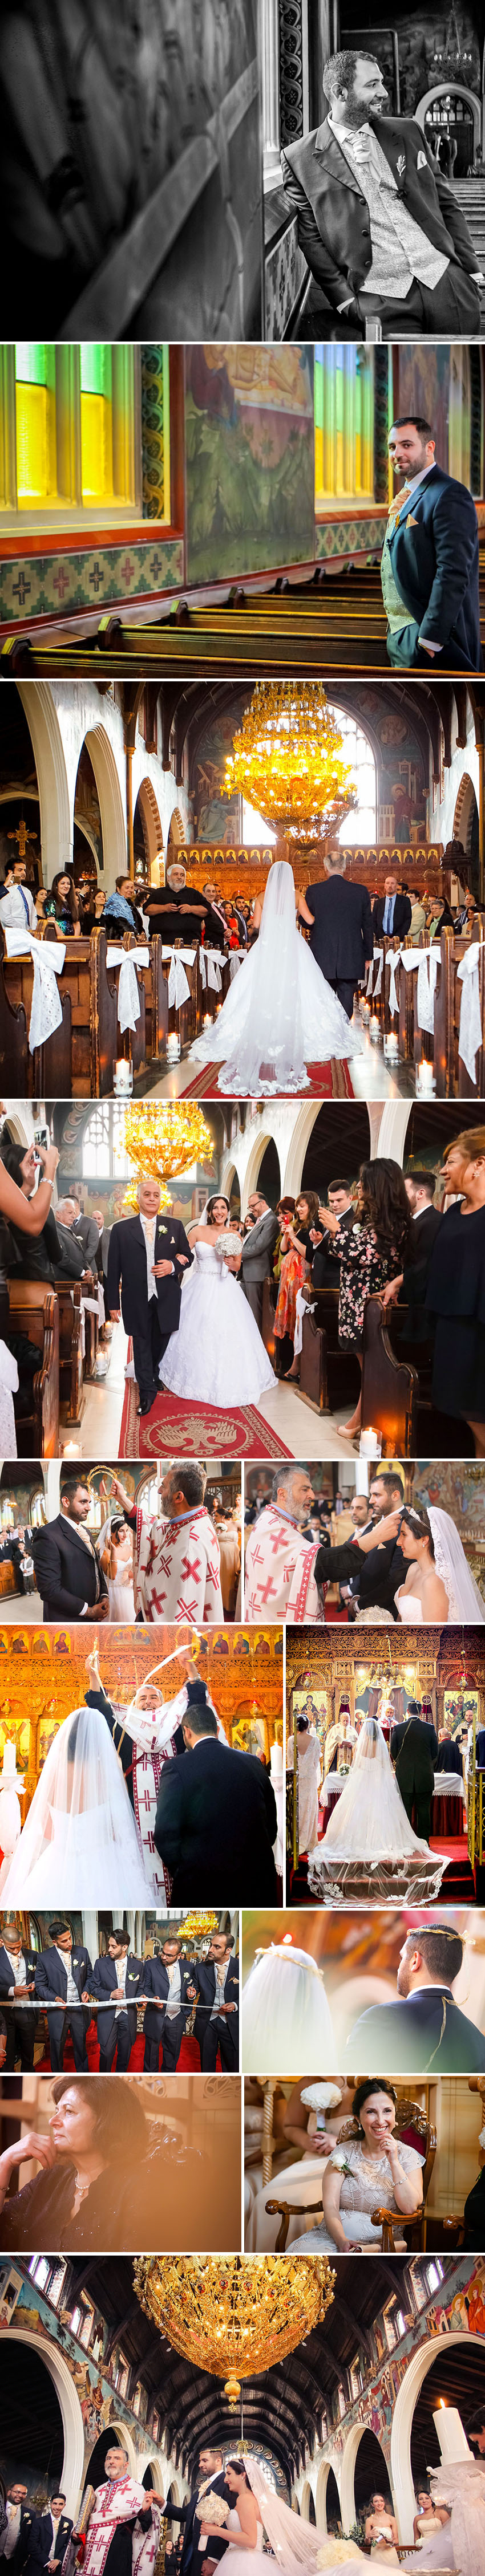 Snapshots of the Greek Cypriot Wedding ceremony